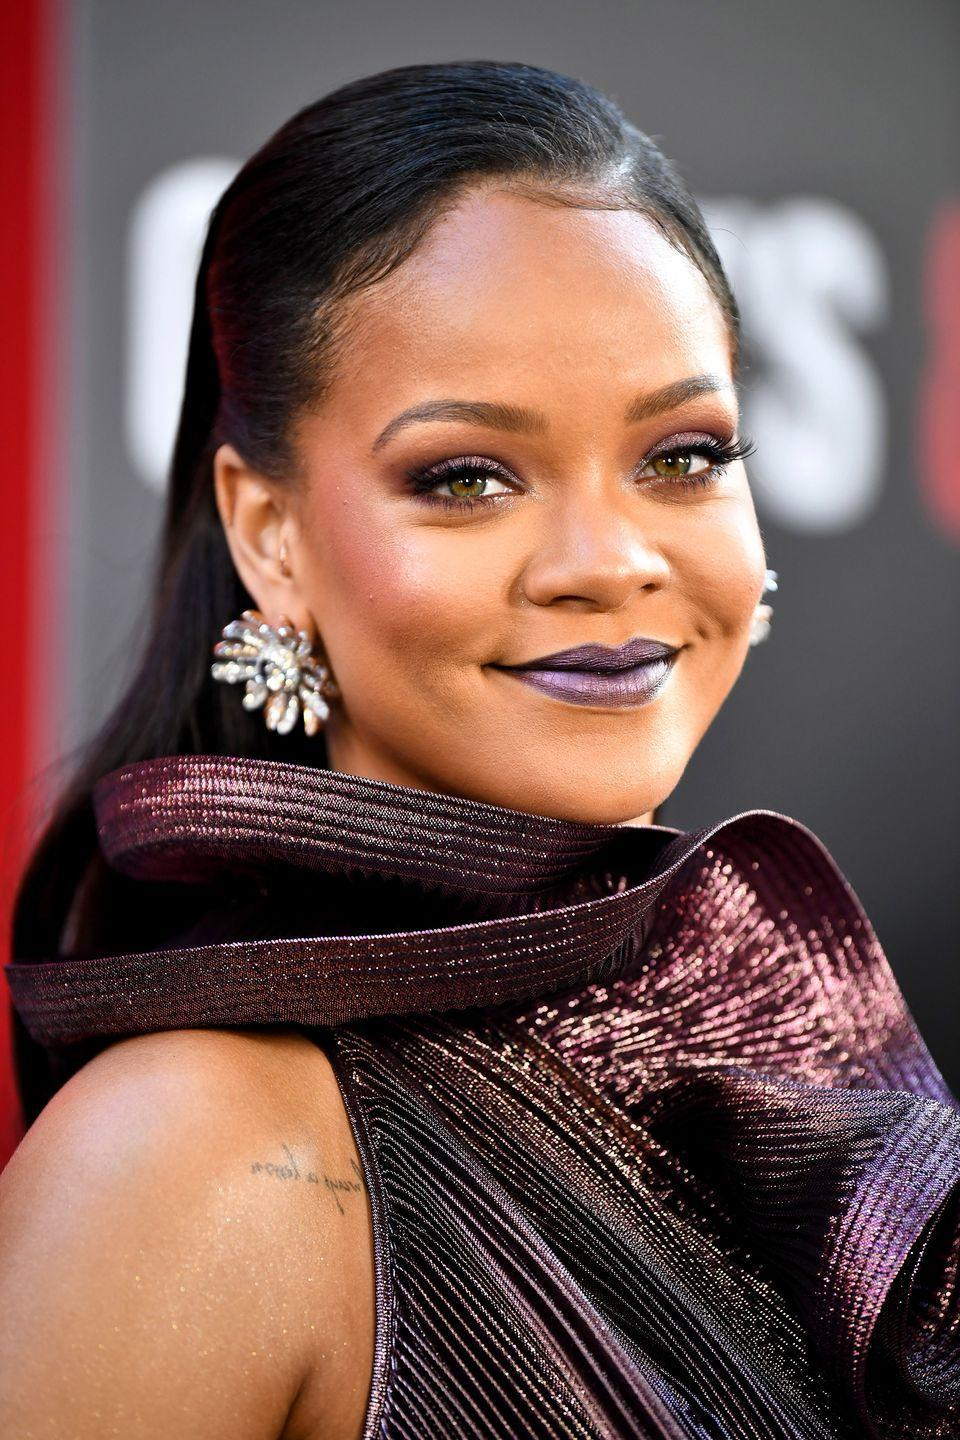 <p>Follow Rihanna's example and use lots of gel but also a diagonal parting to get an on-trend wet-look finish to your hair, while still adding volume to your crown. </p>